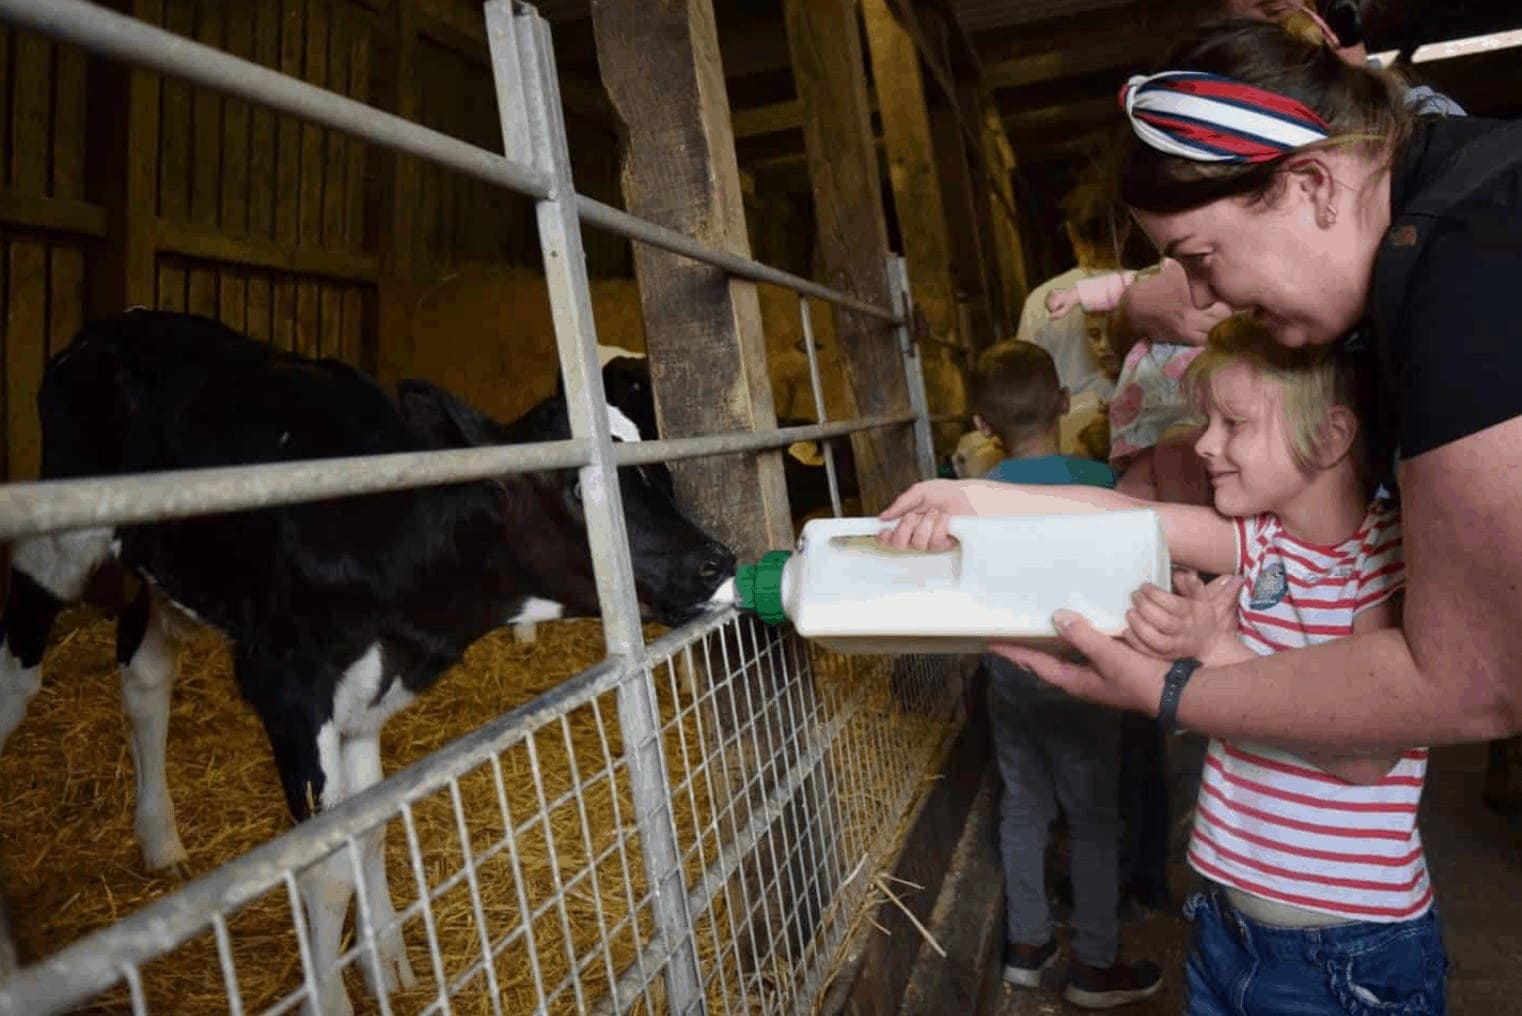 We've been to Smithills Farm so many times in the last few years and think it's a really lovely day out – with that in mind, I wanted to share thirteen things to do at Smithills Open Farm.